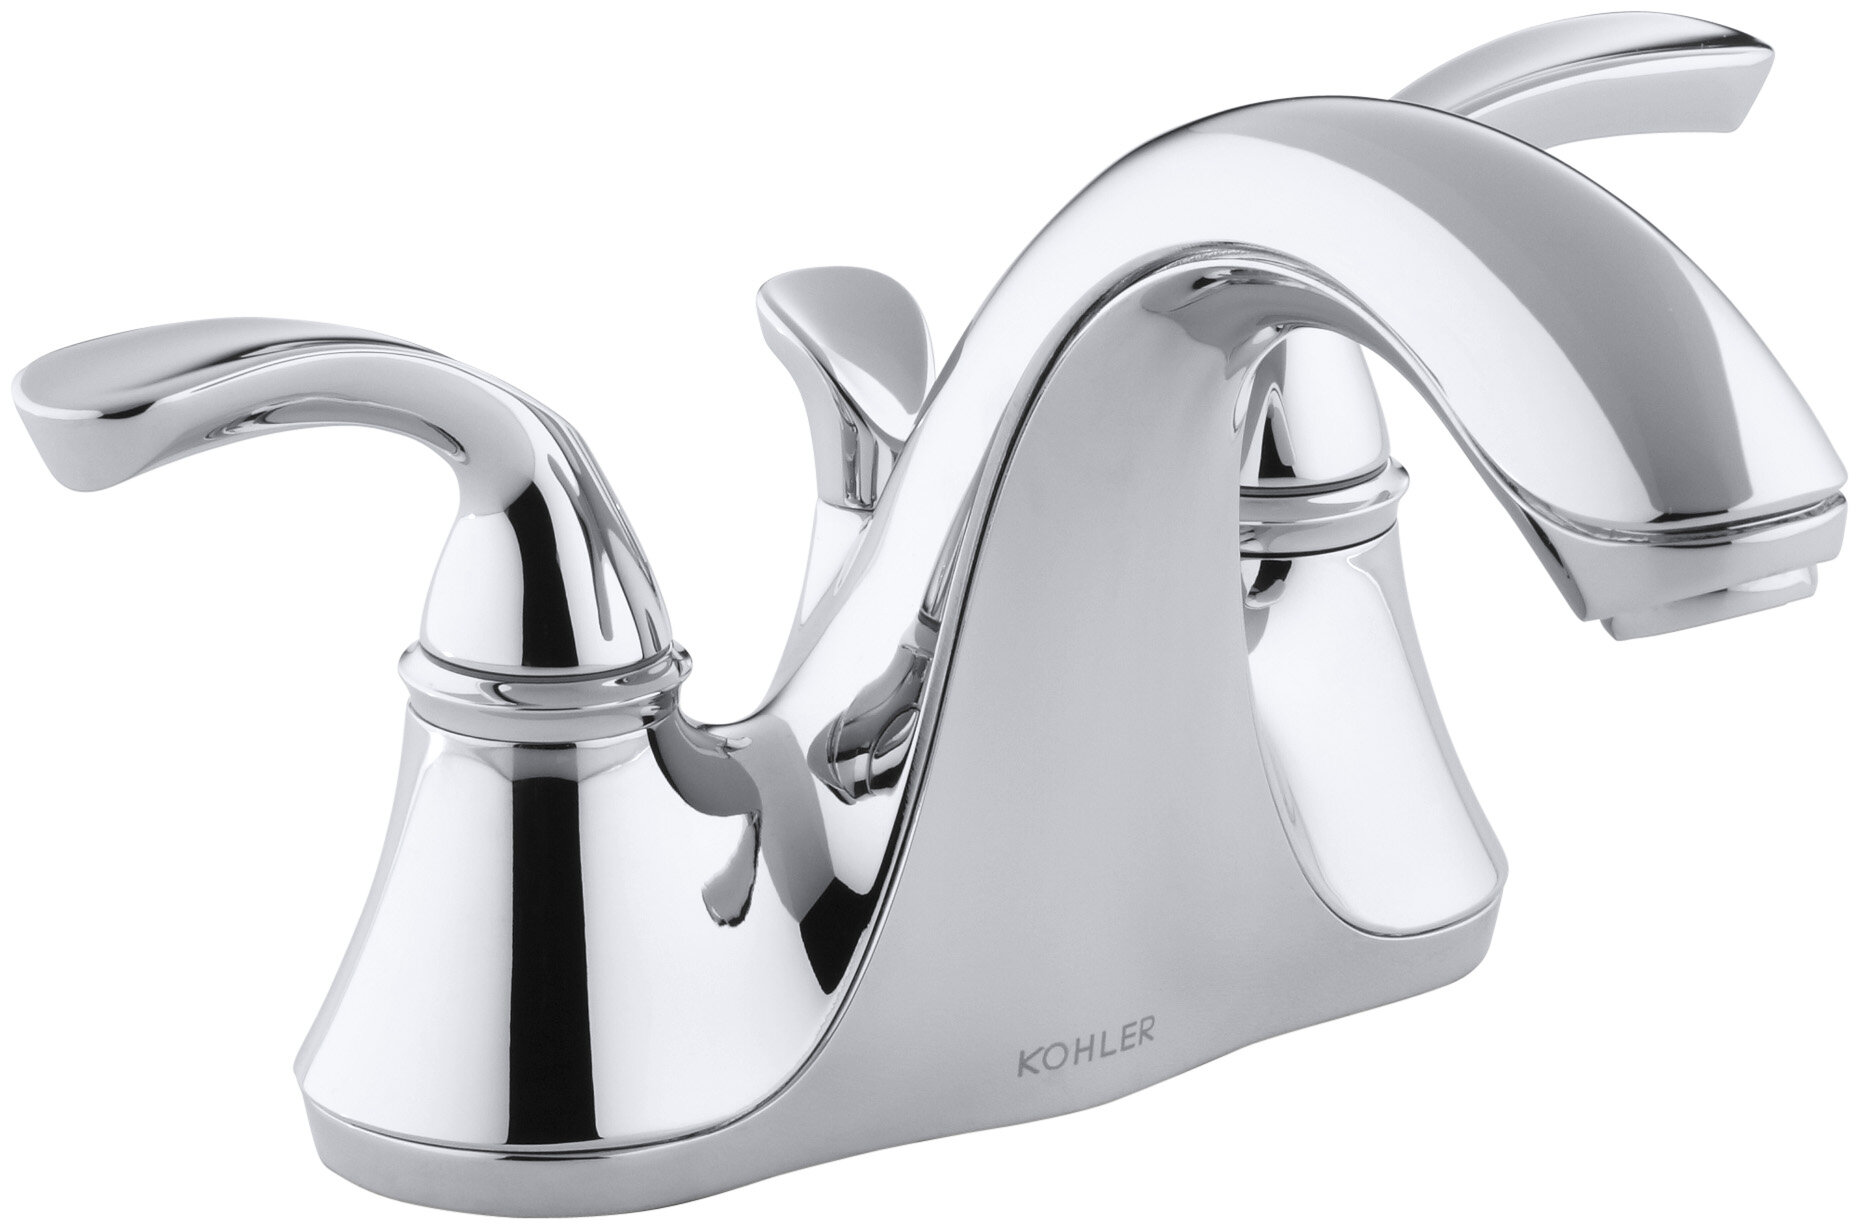 Awesome Kohler Forte Centerset Bathroom Faucet With Drain Assembly Complete Home Design Collection Papxelindsey Bellcom